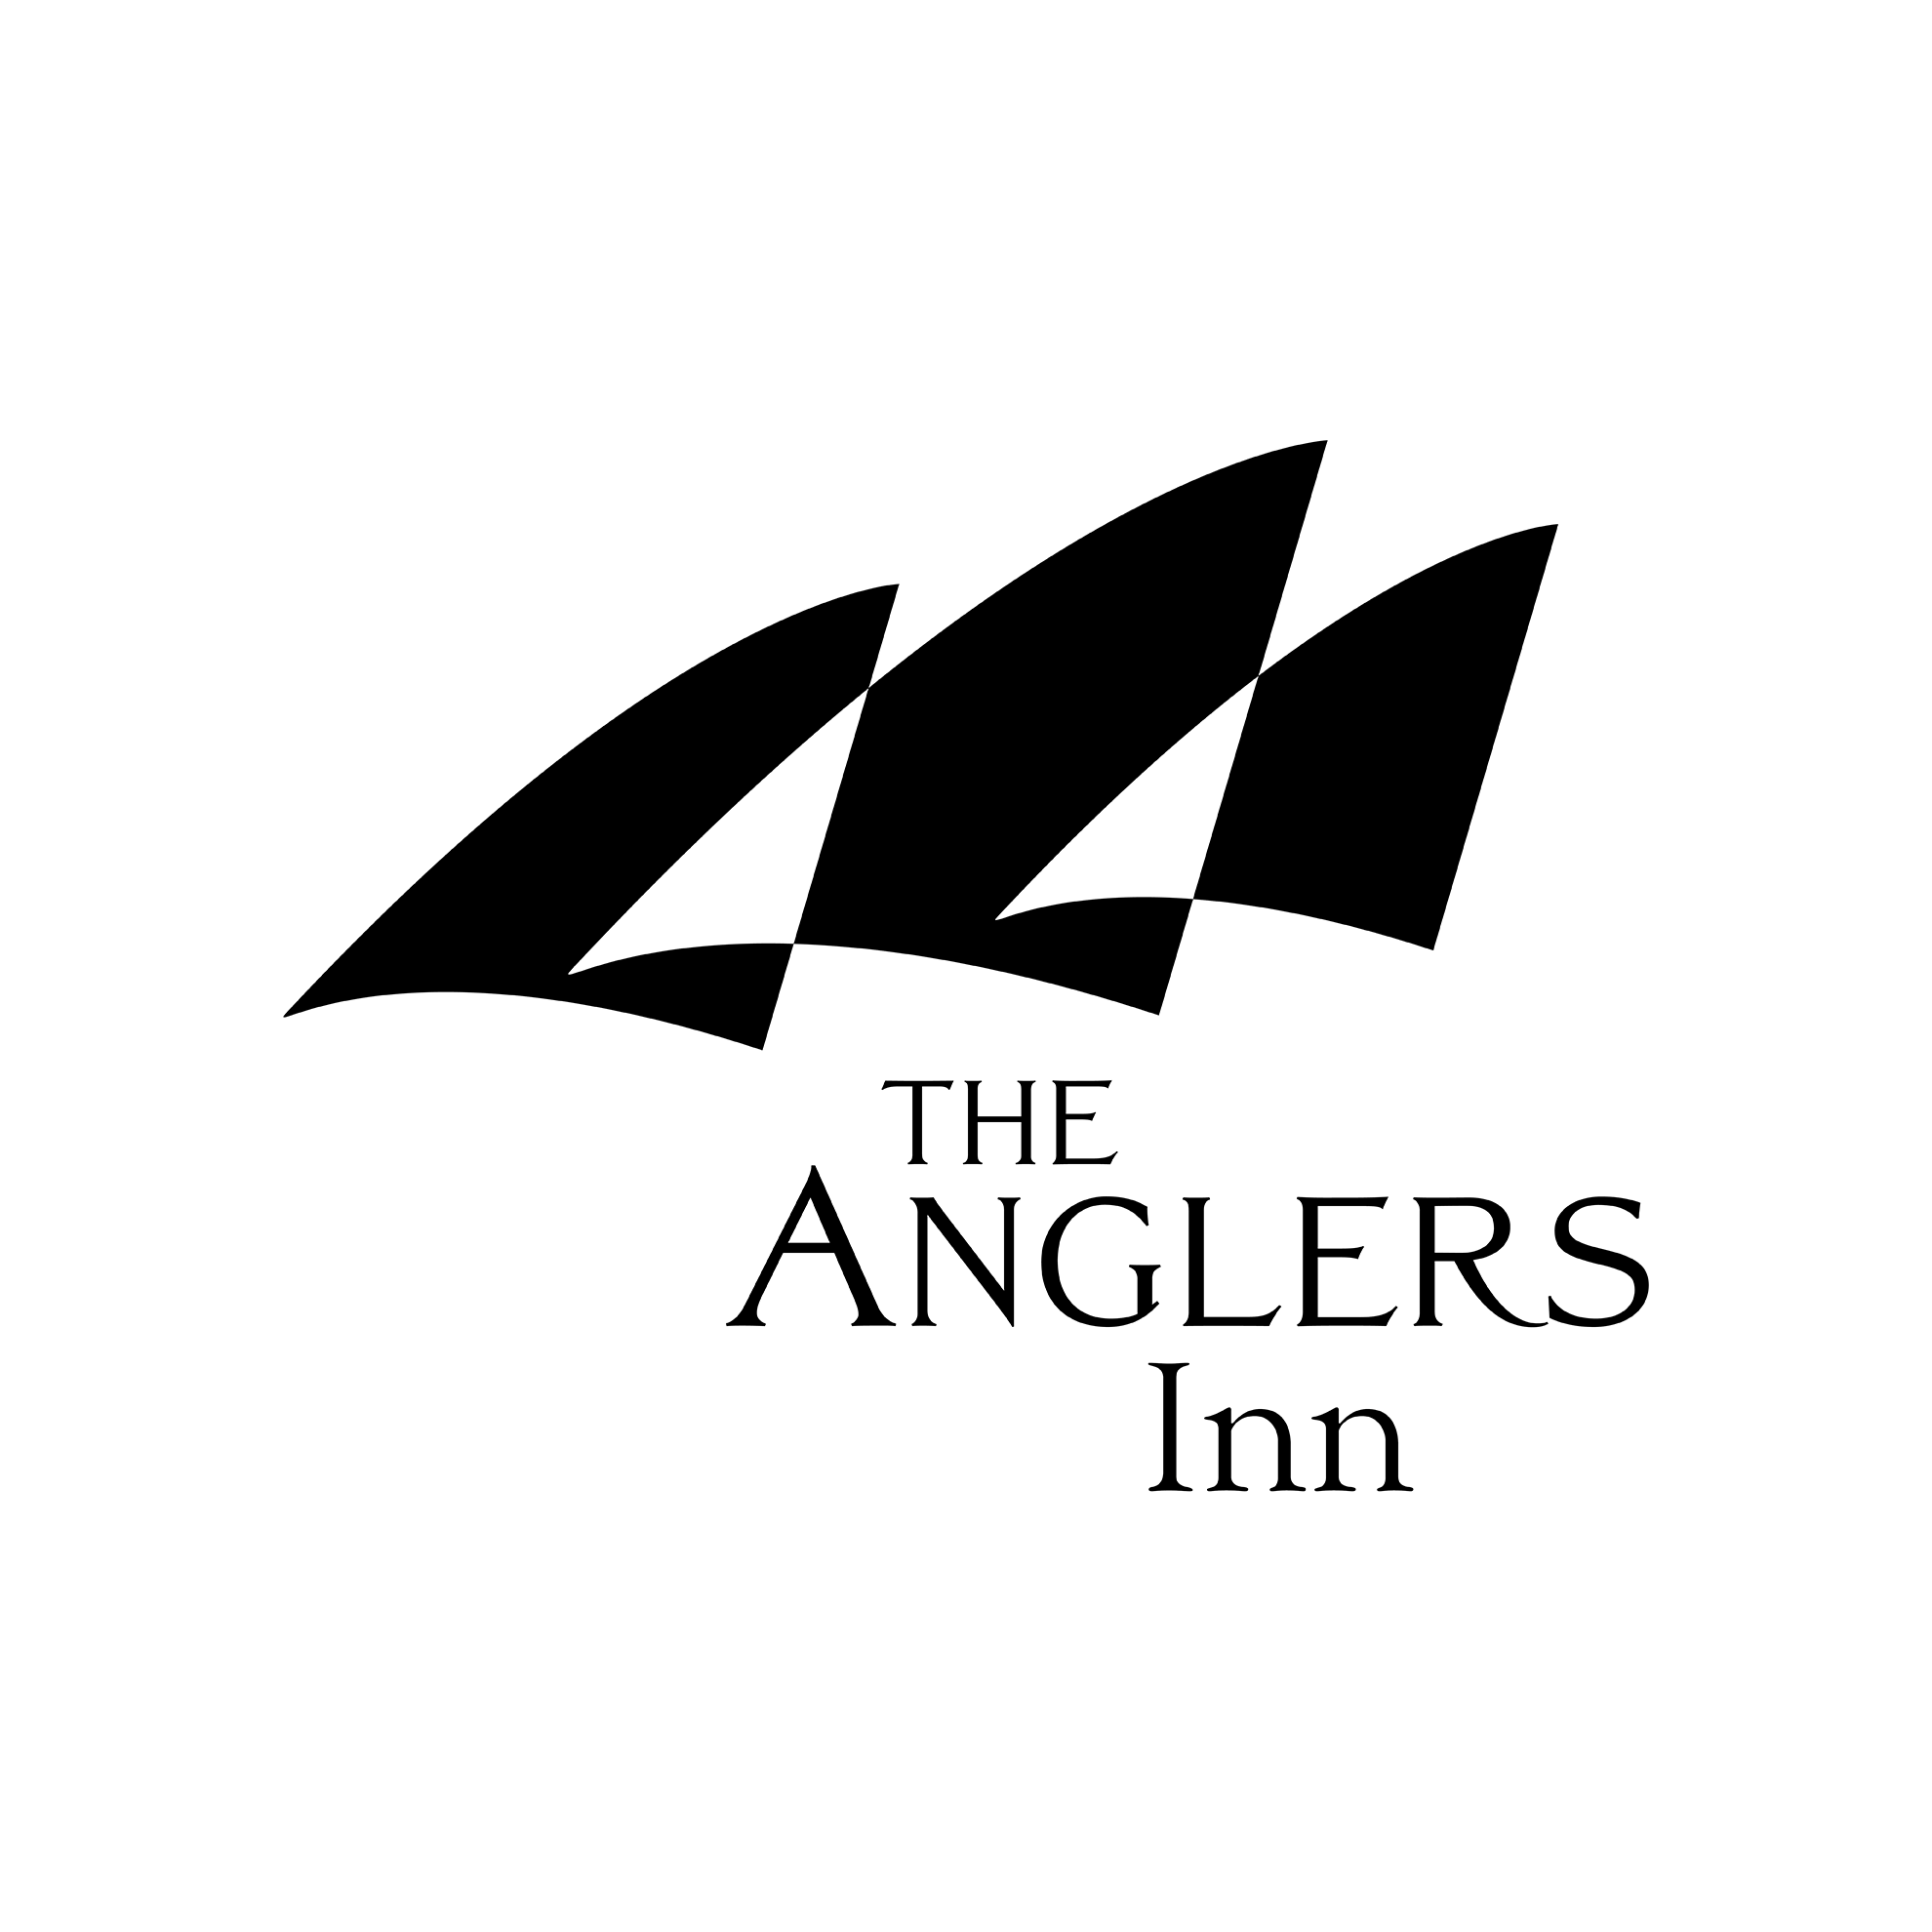 The Anglers Inn logo